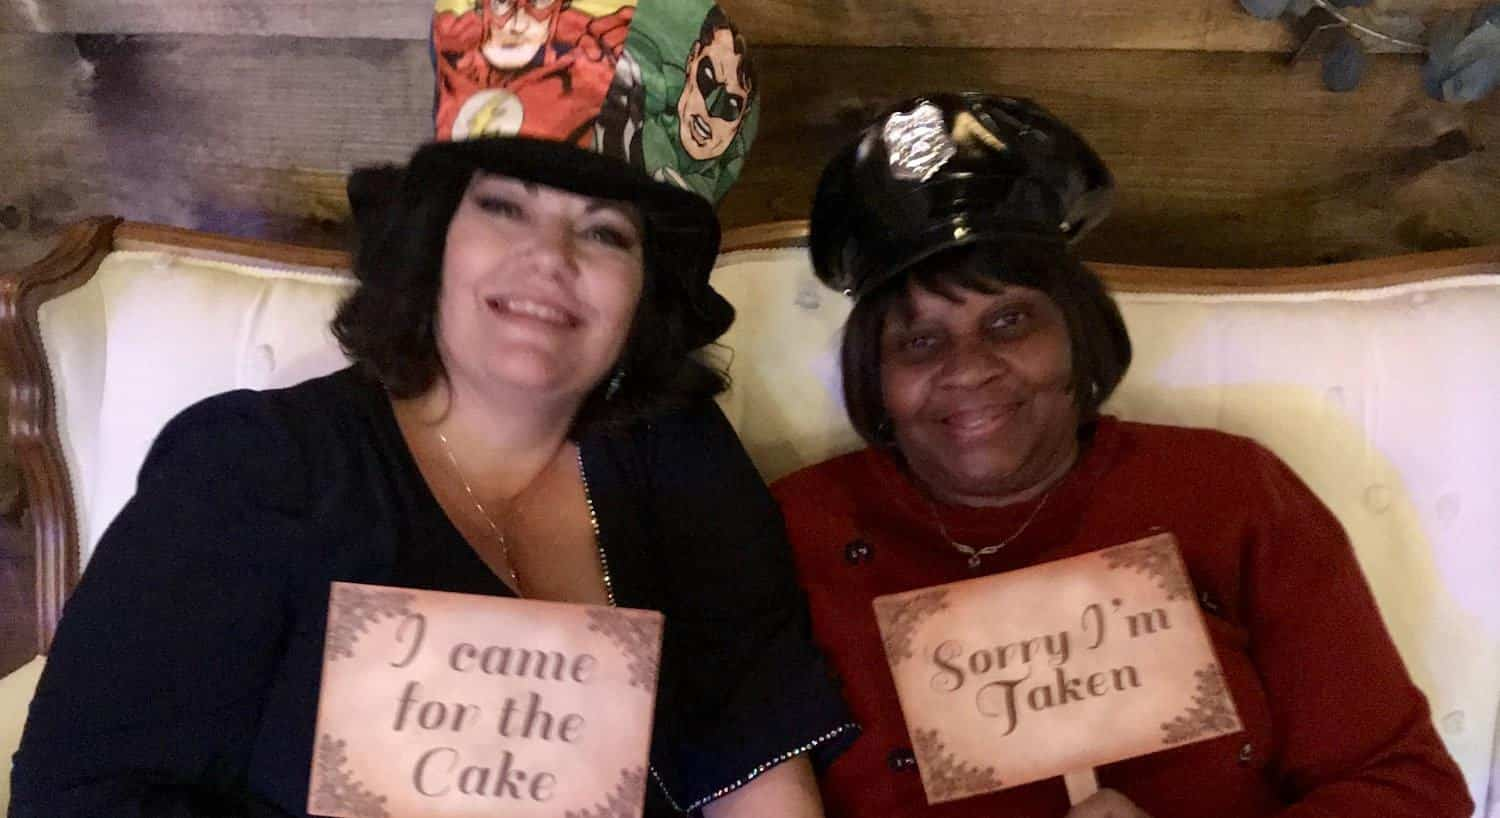 Two women smiling and wearing props for wedding reception photos